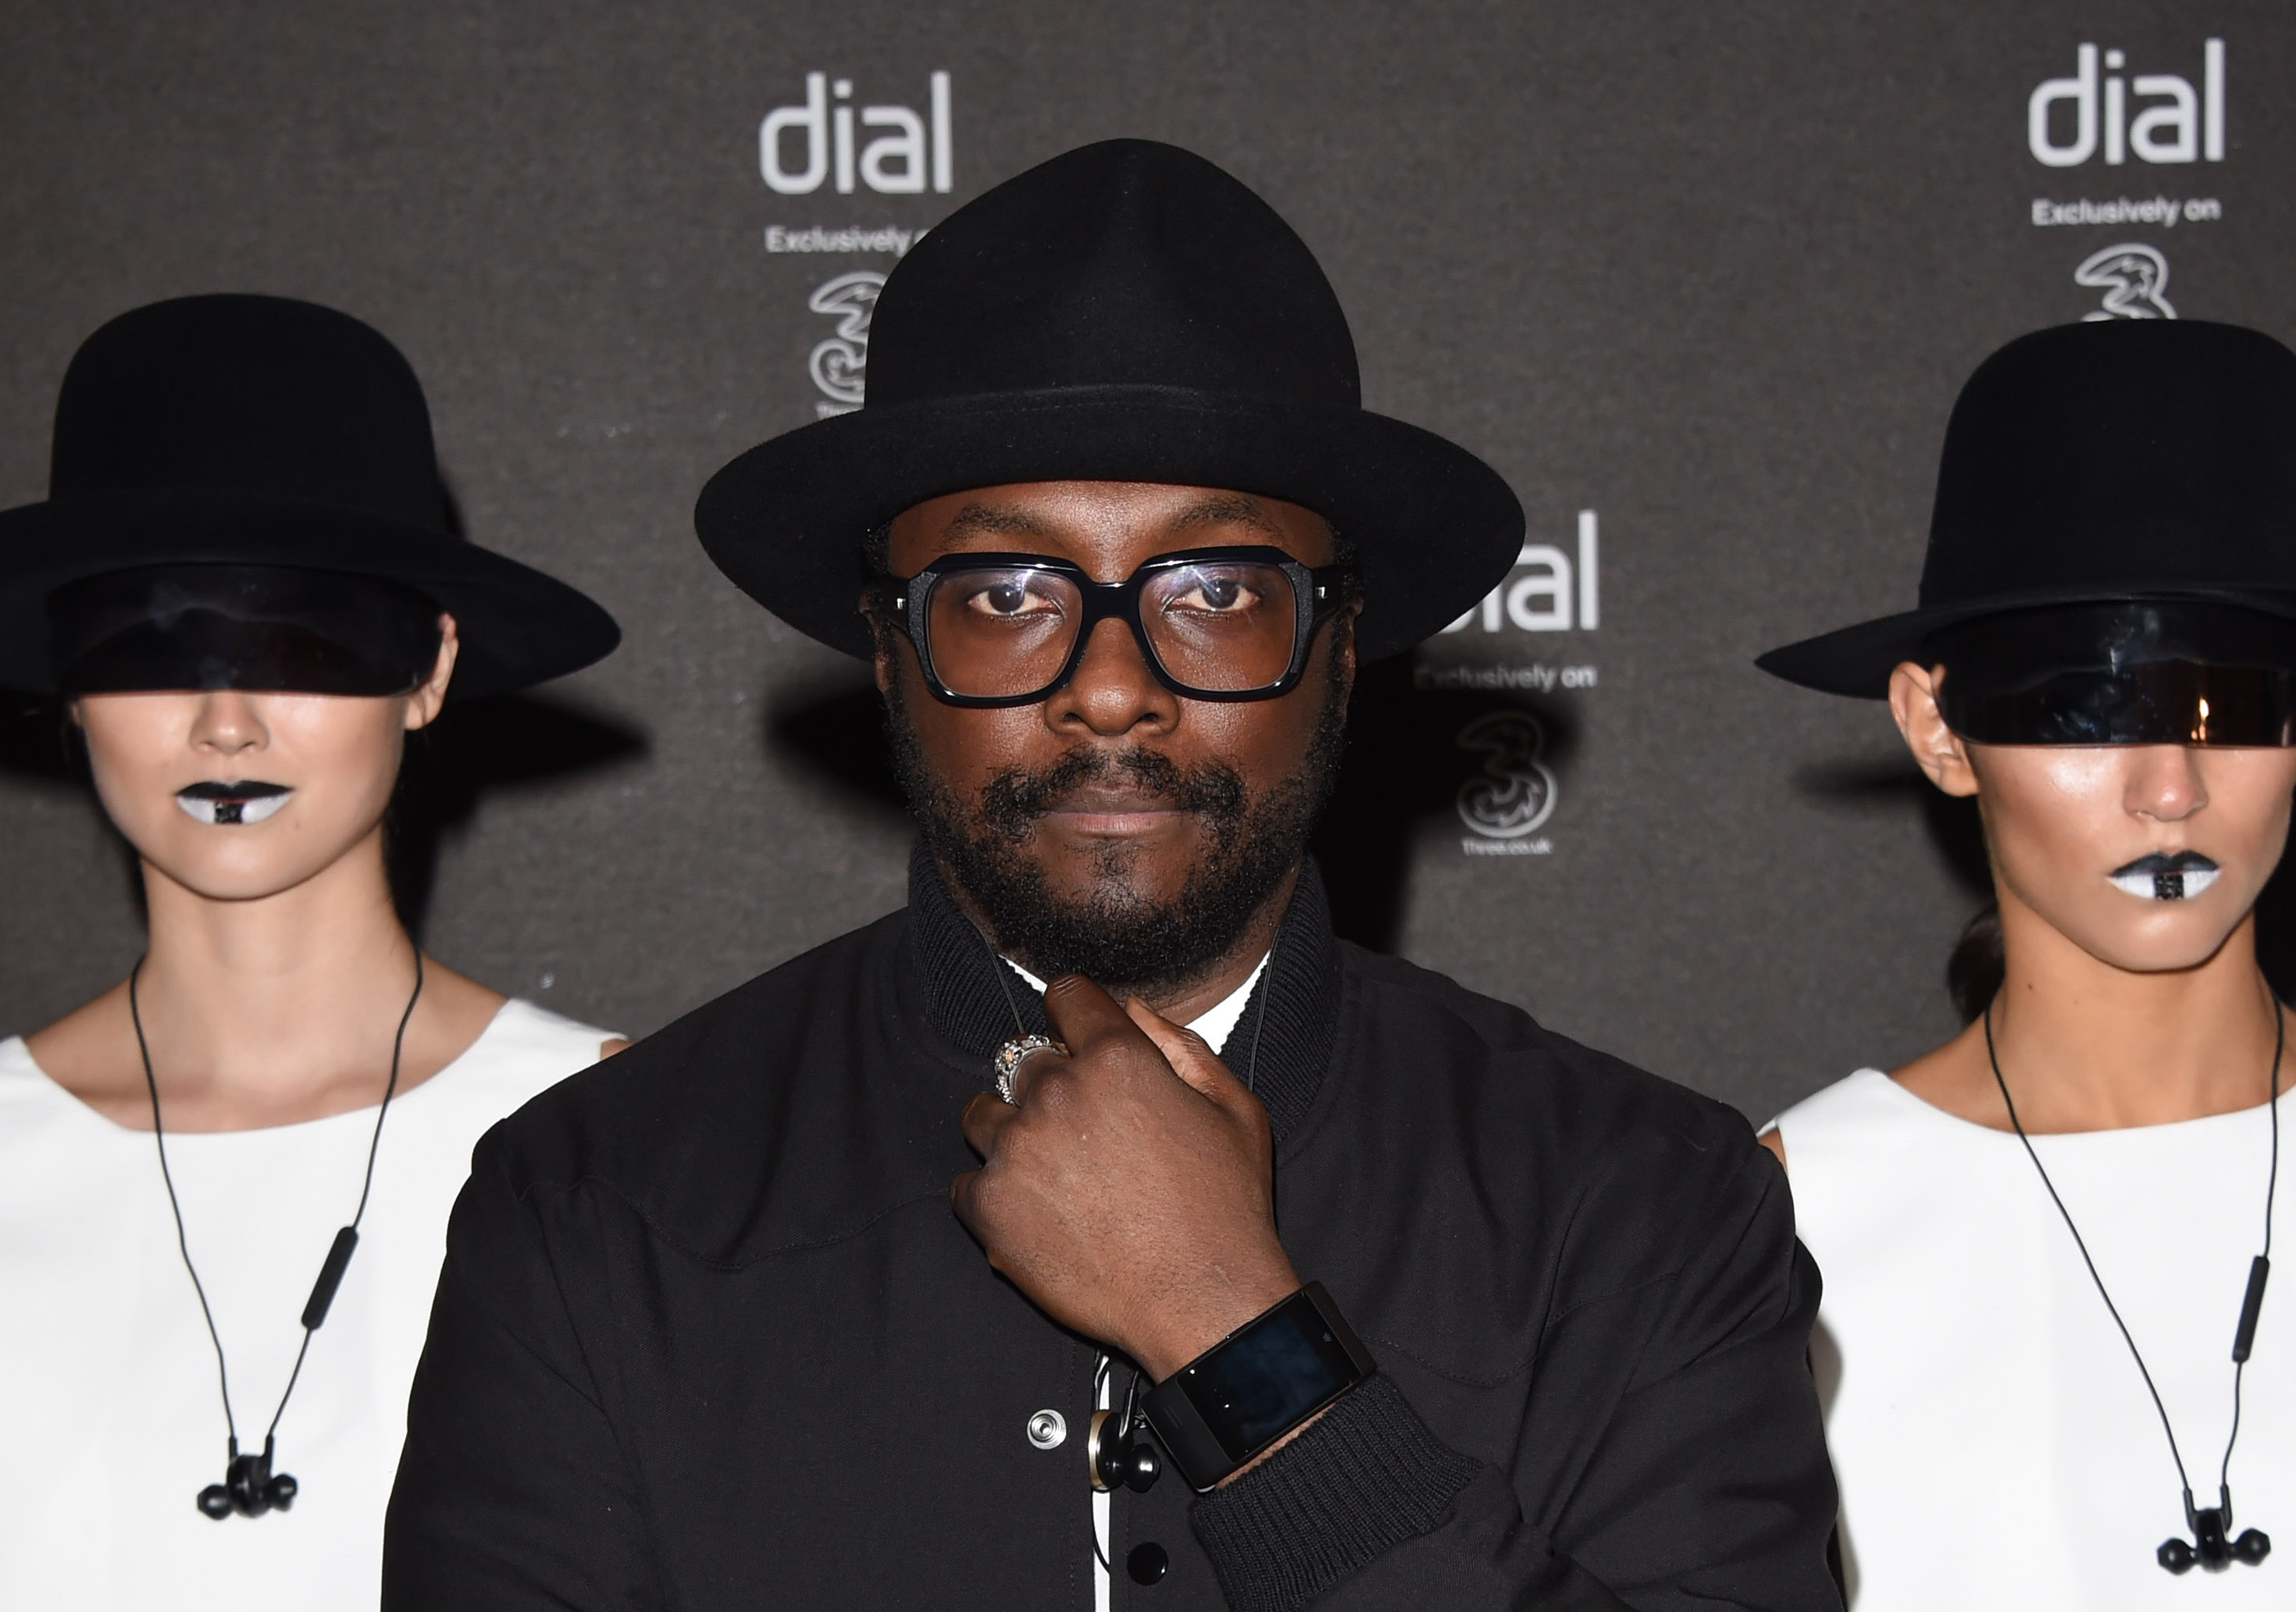 Launch of Will.i.am's new smartwatch was rid.ic.ulous